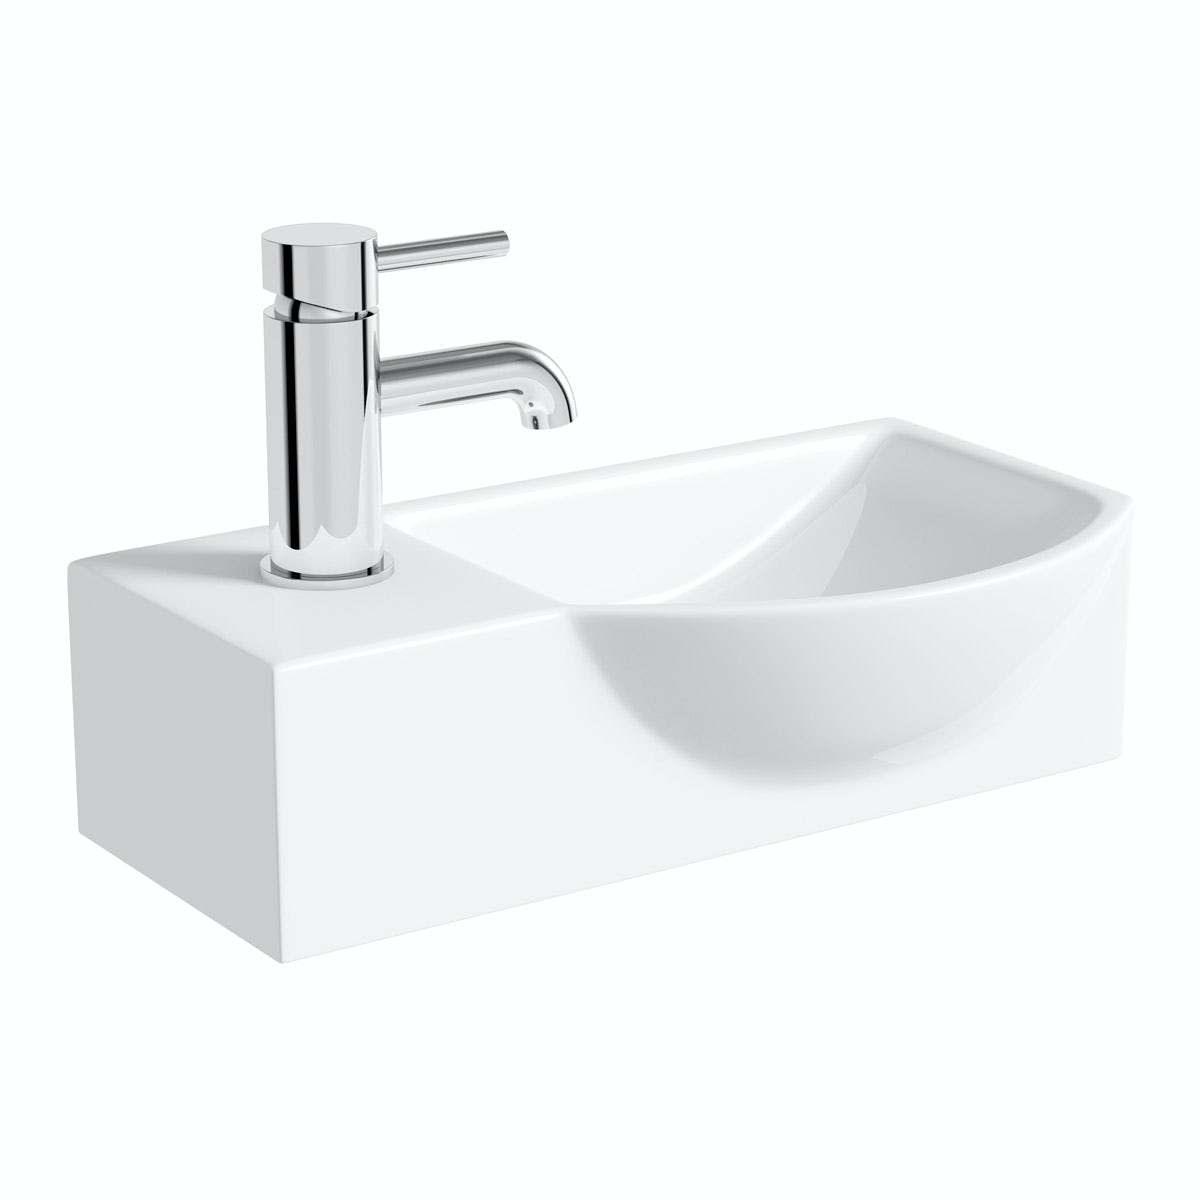 Orchard Lugano 1 tap hole basin 410mm